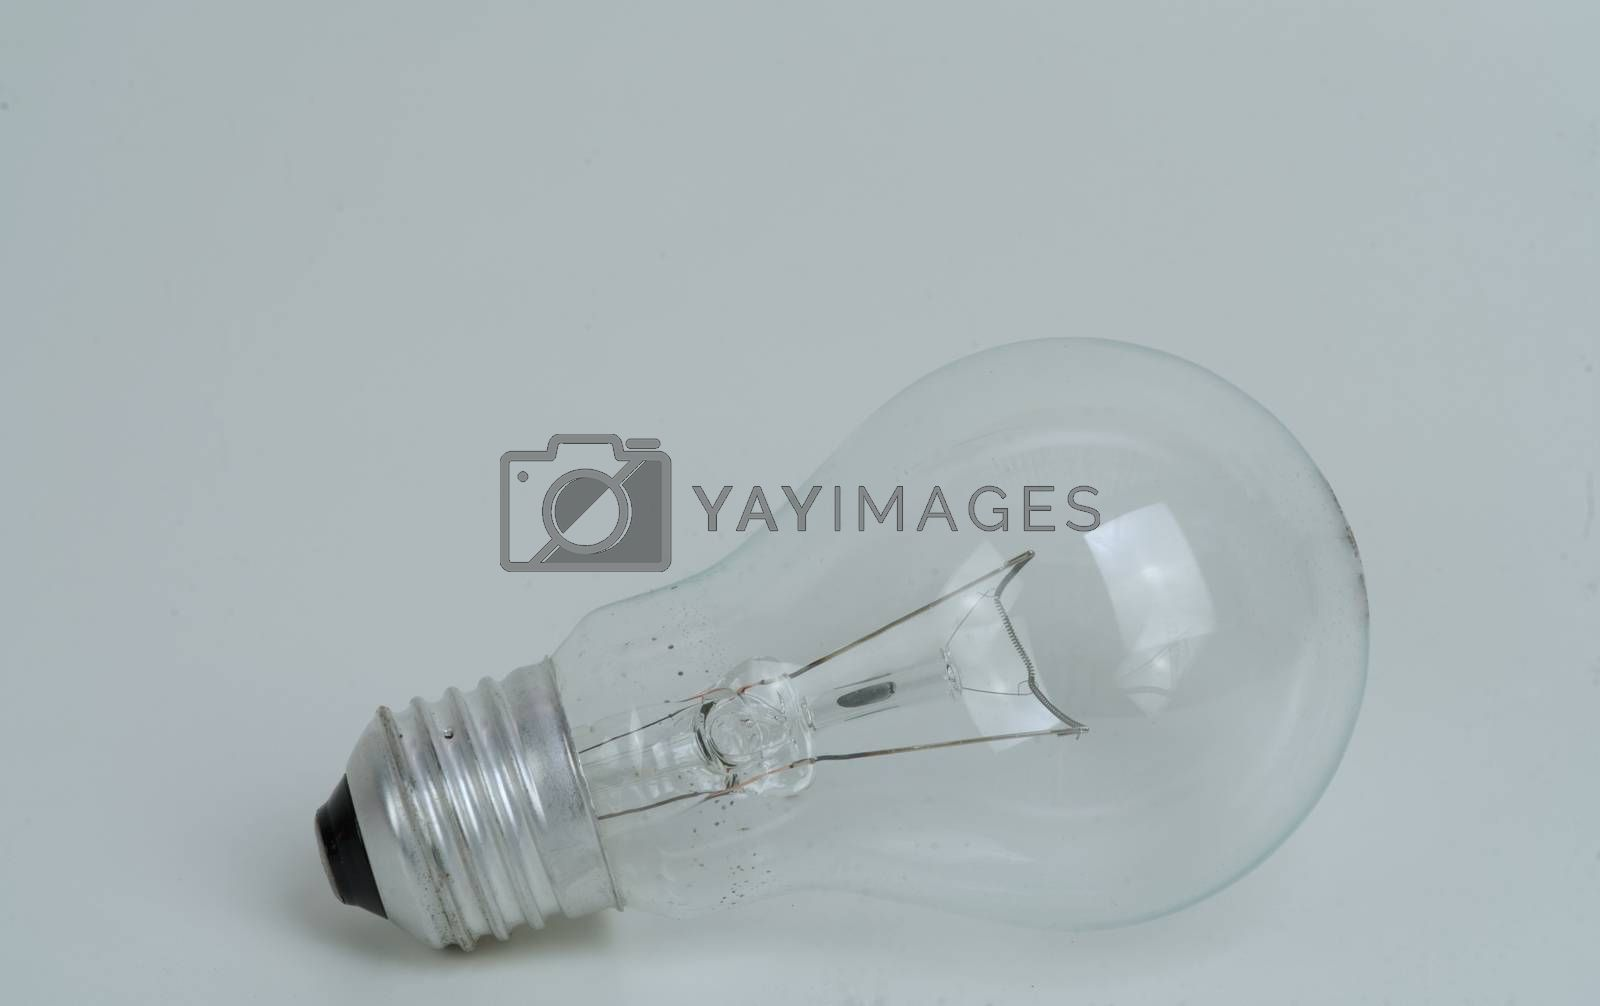 The Abstract previously used the light bulb concept on white isolated background.